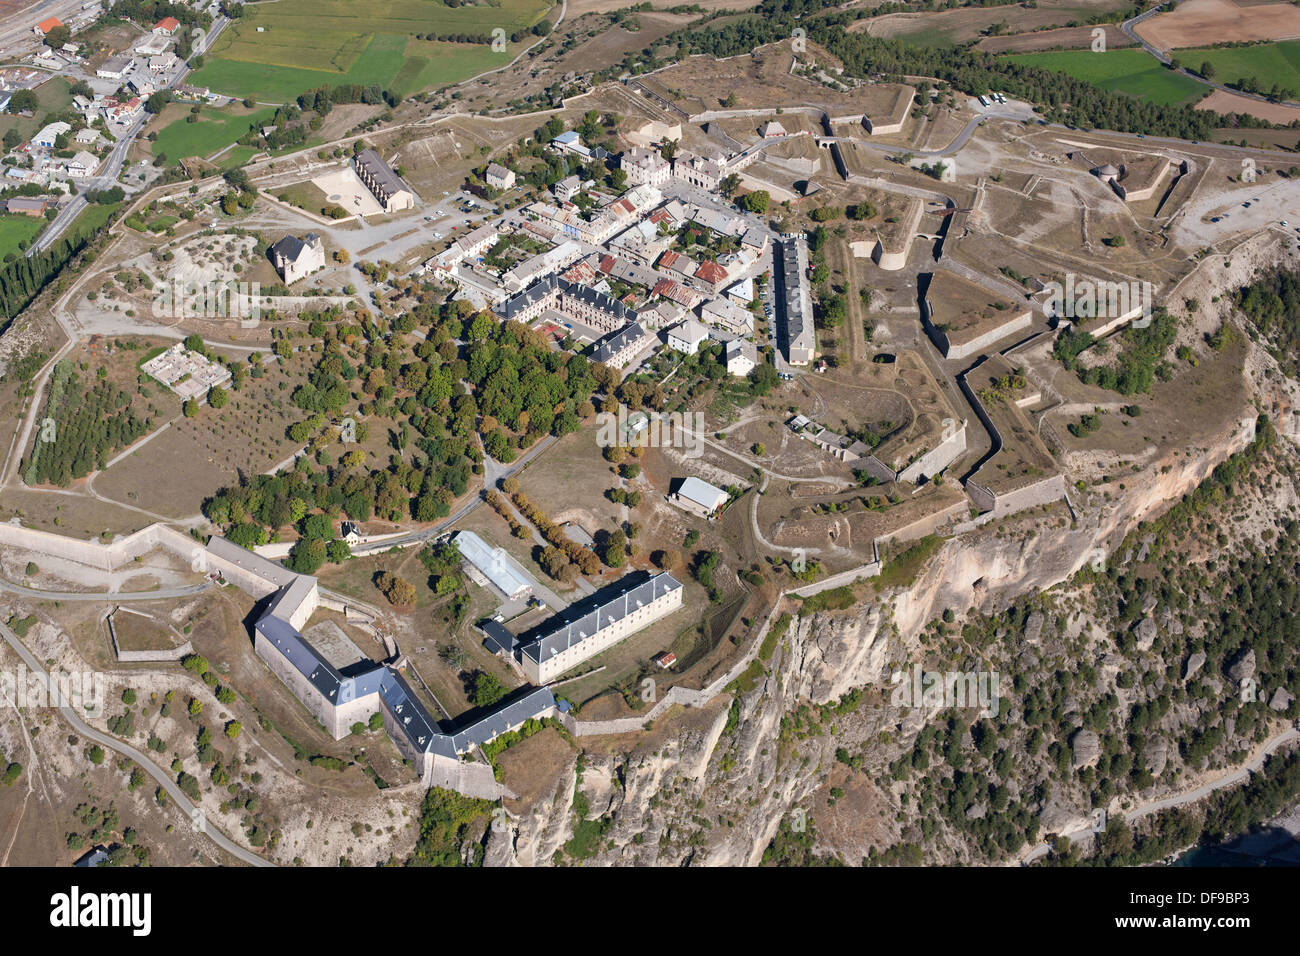 FORTIFICATIONS OF MONT-DAUPHIN (aerial view). The citadel. Guillestre, Hautes-Alpes, France. - Stock Image